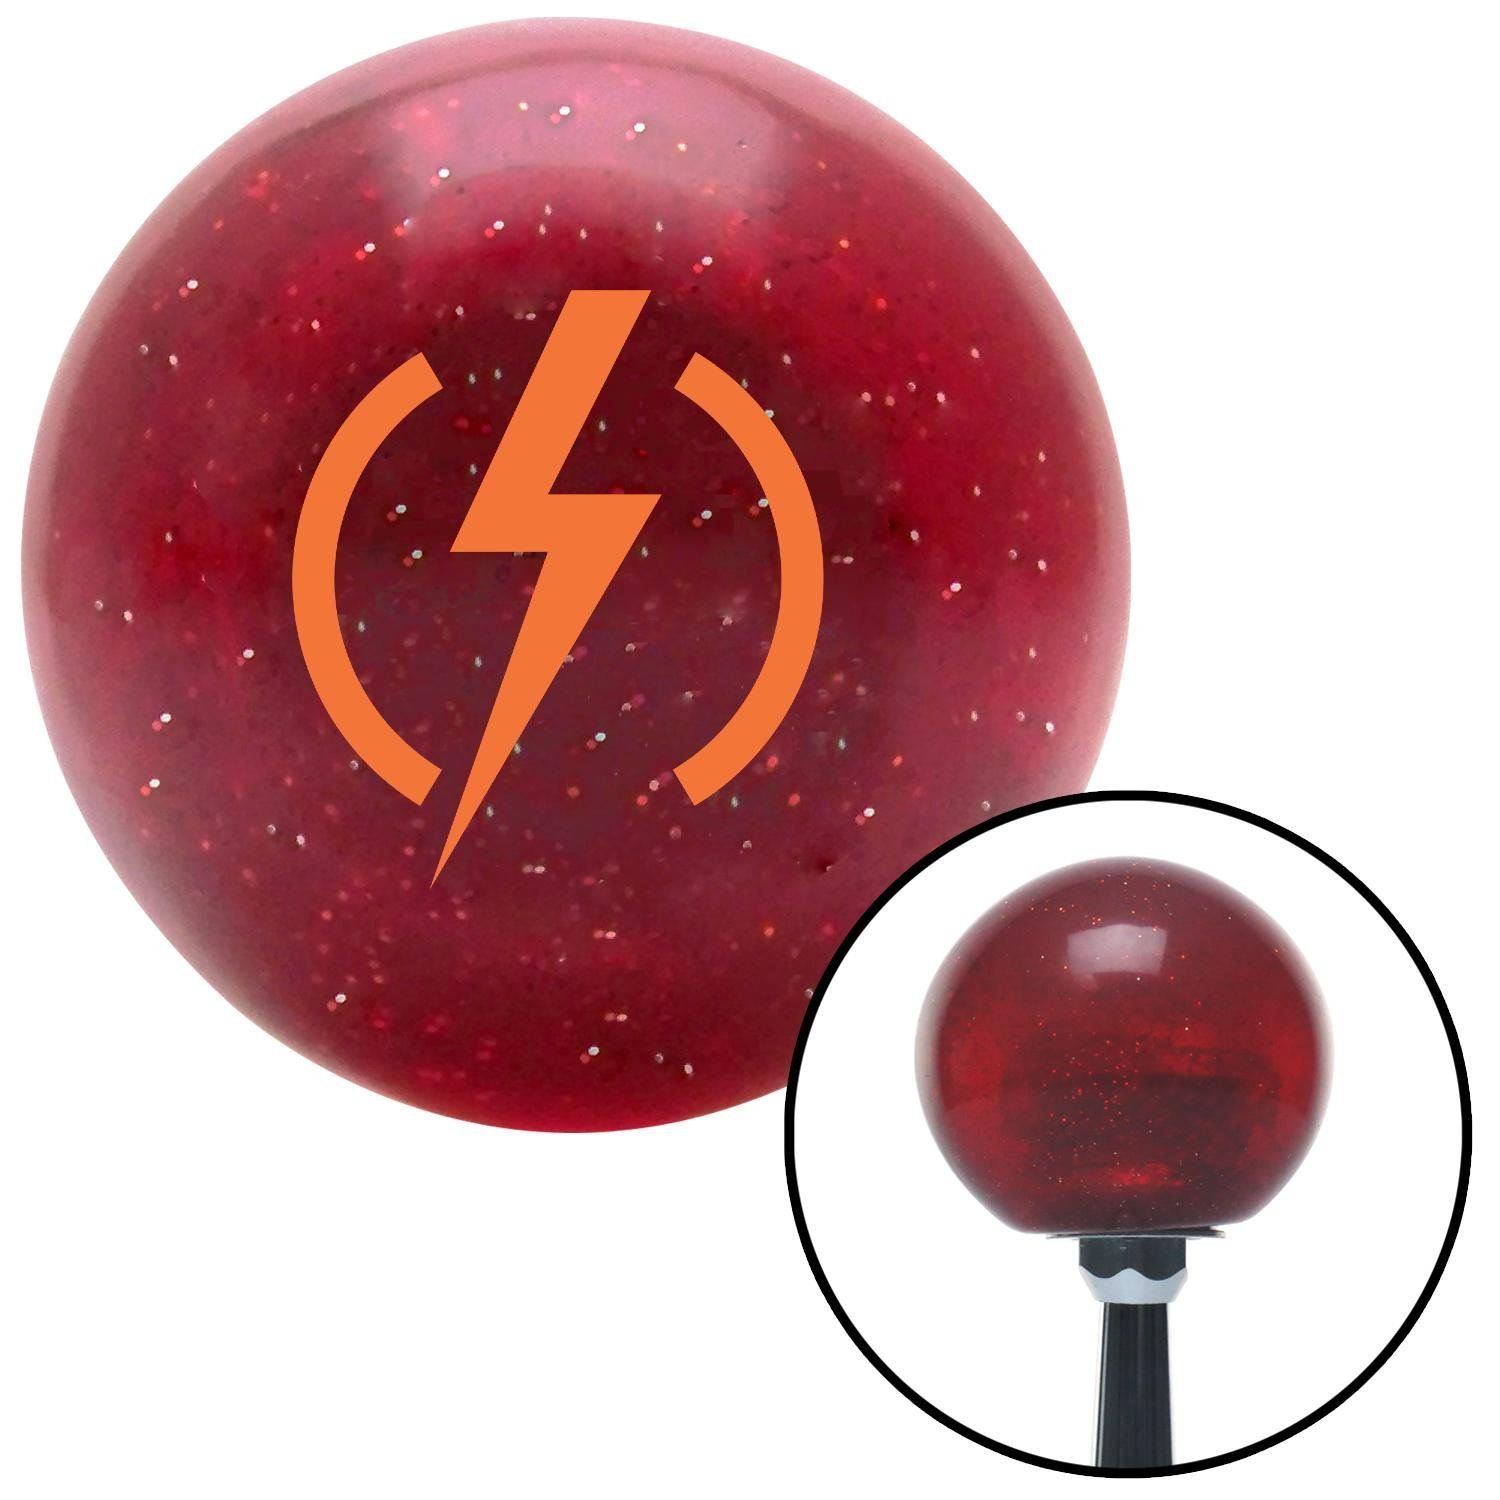 American Shifter 47646 Red Metal Flake Shift Knob with 16mm x 1.5 Insert Orange Bolt